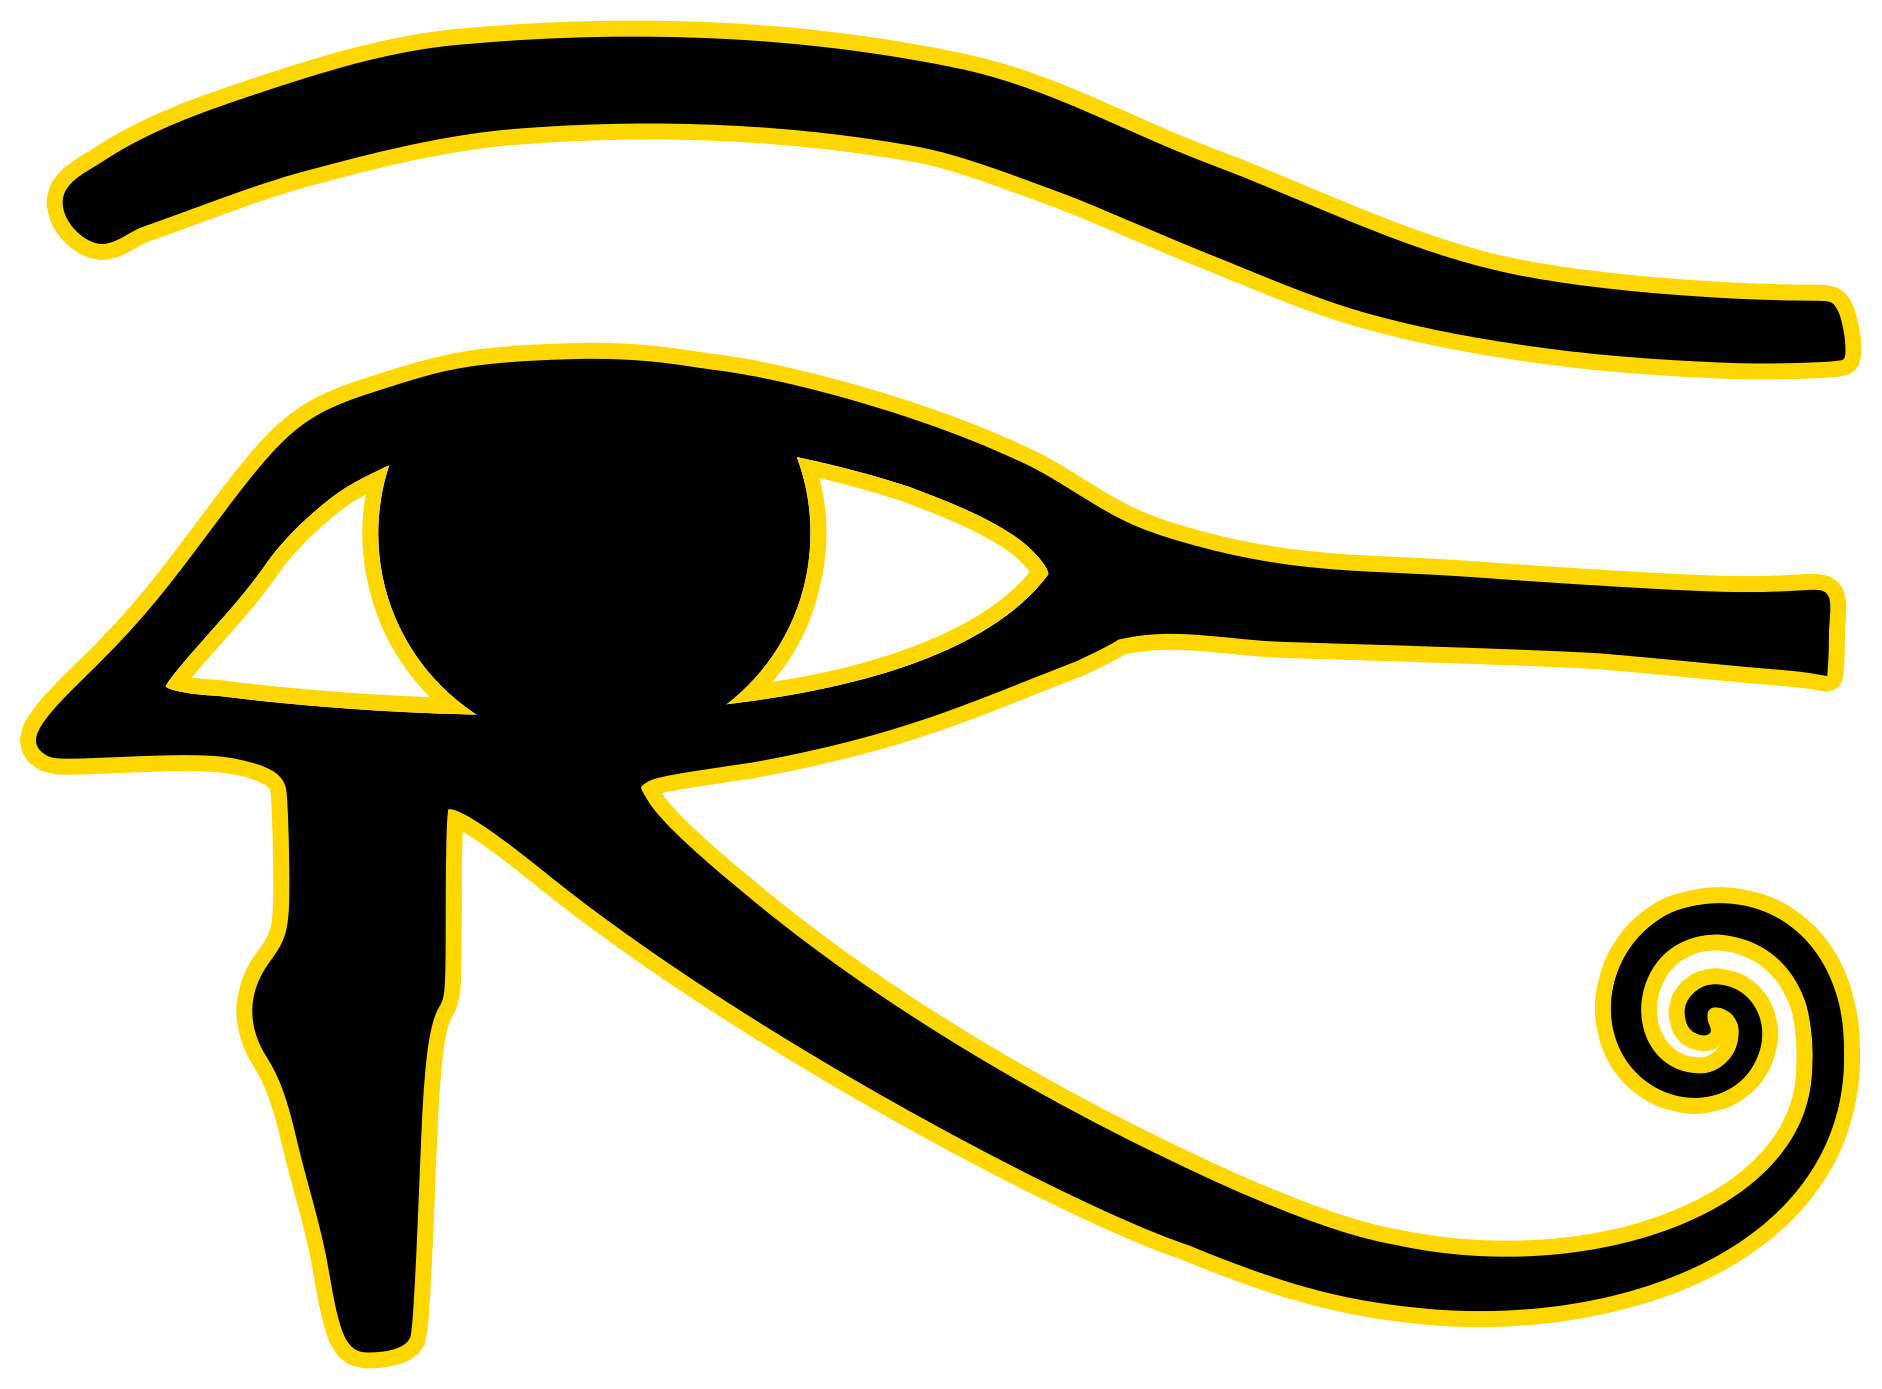 Eye of Horus - Left - I am using this in the most general sense of being a Pagan eye symbol. I love this symbol, and it appeared to me in golden laser light w